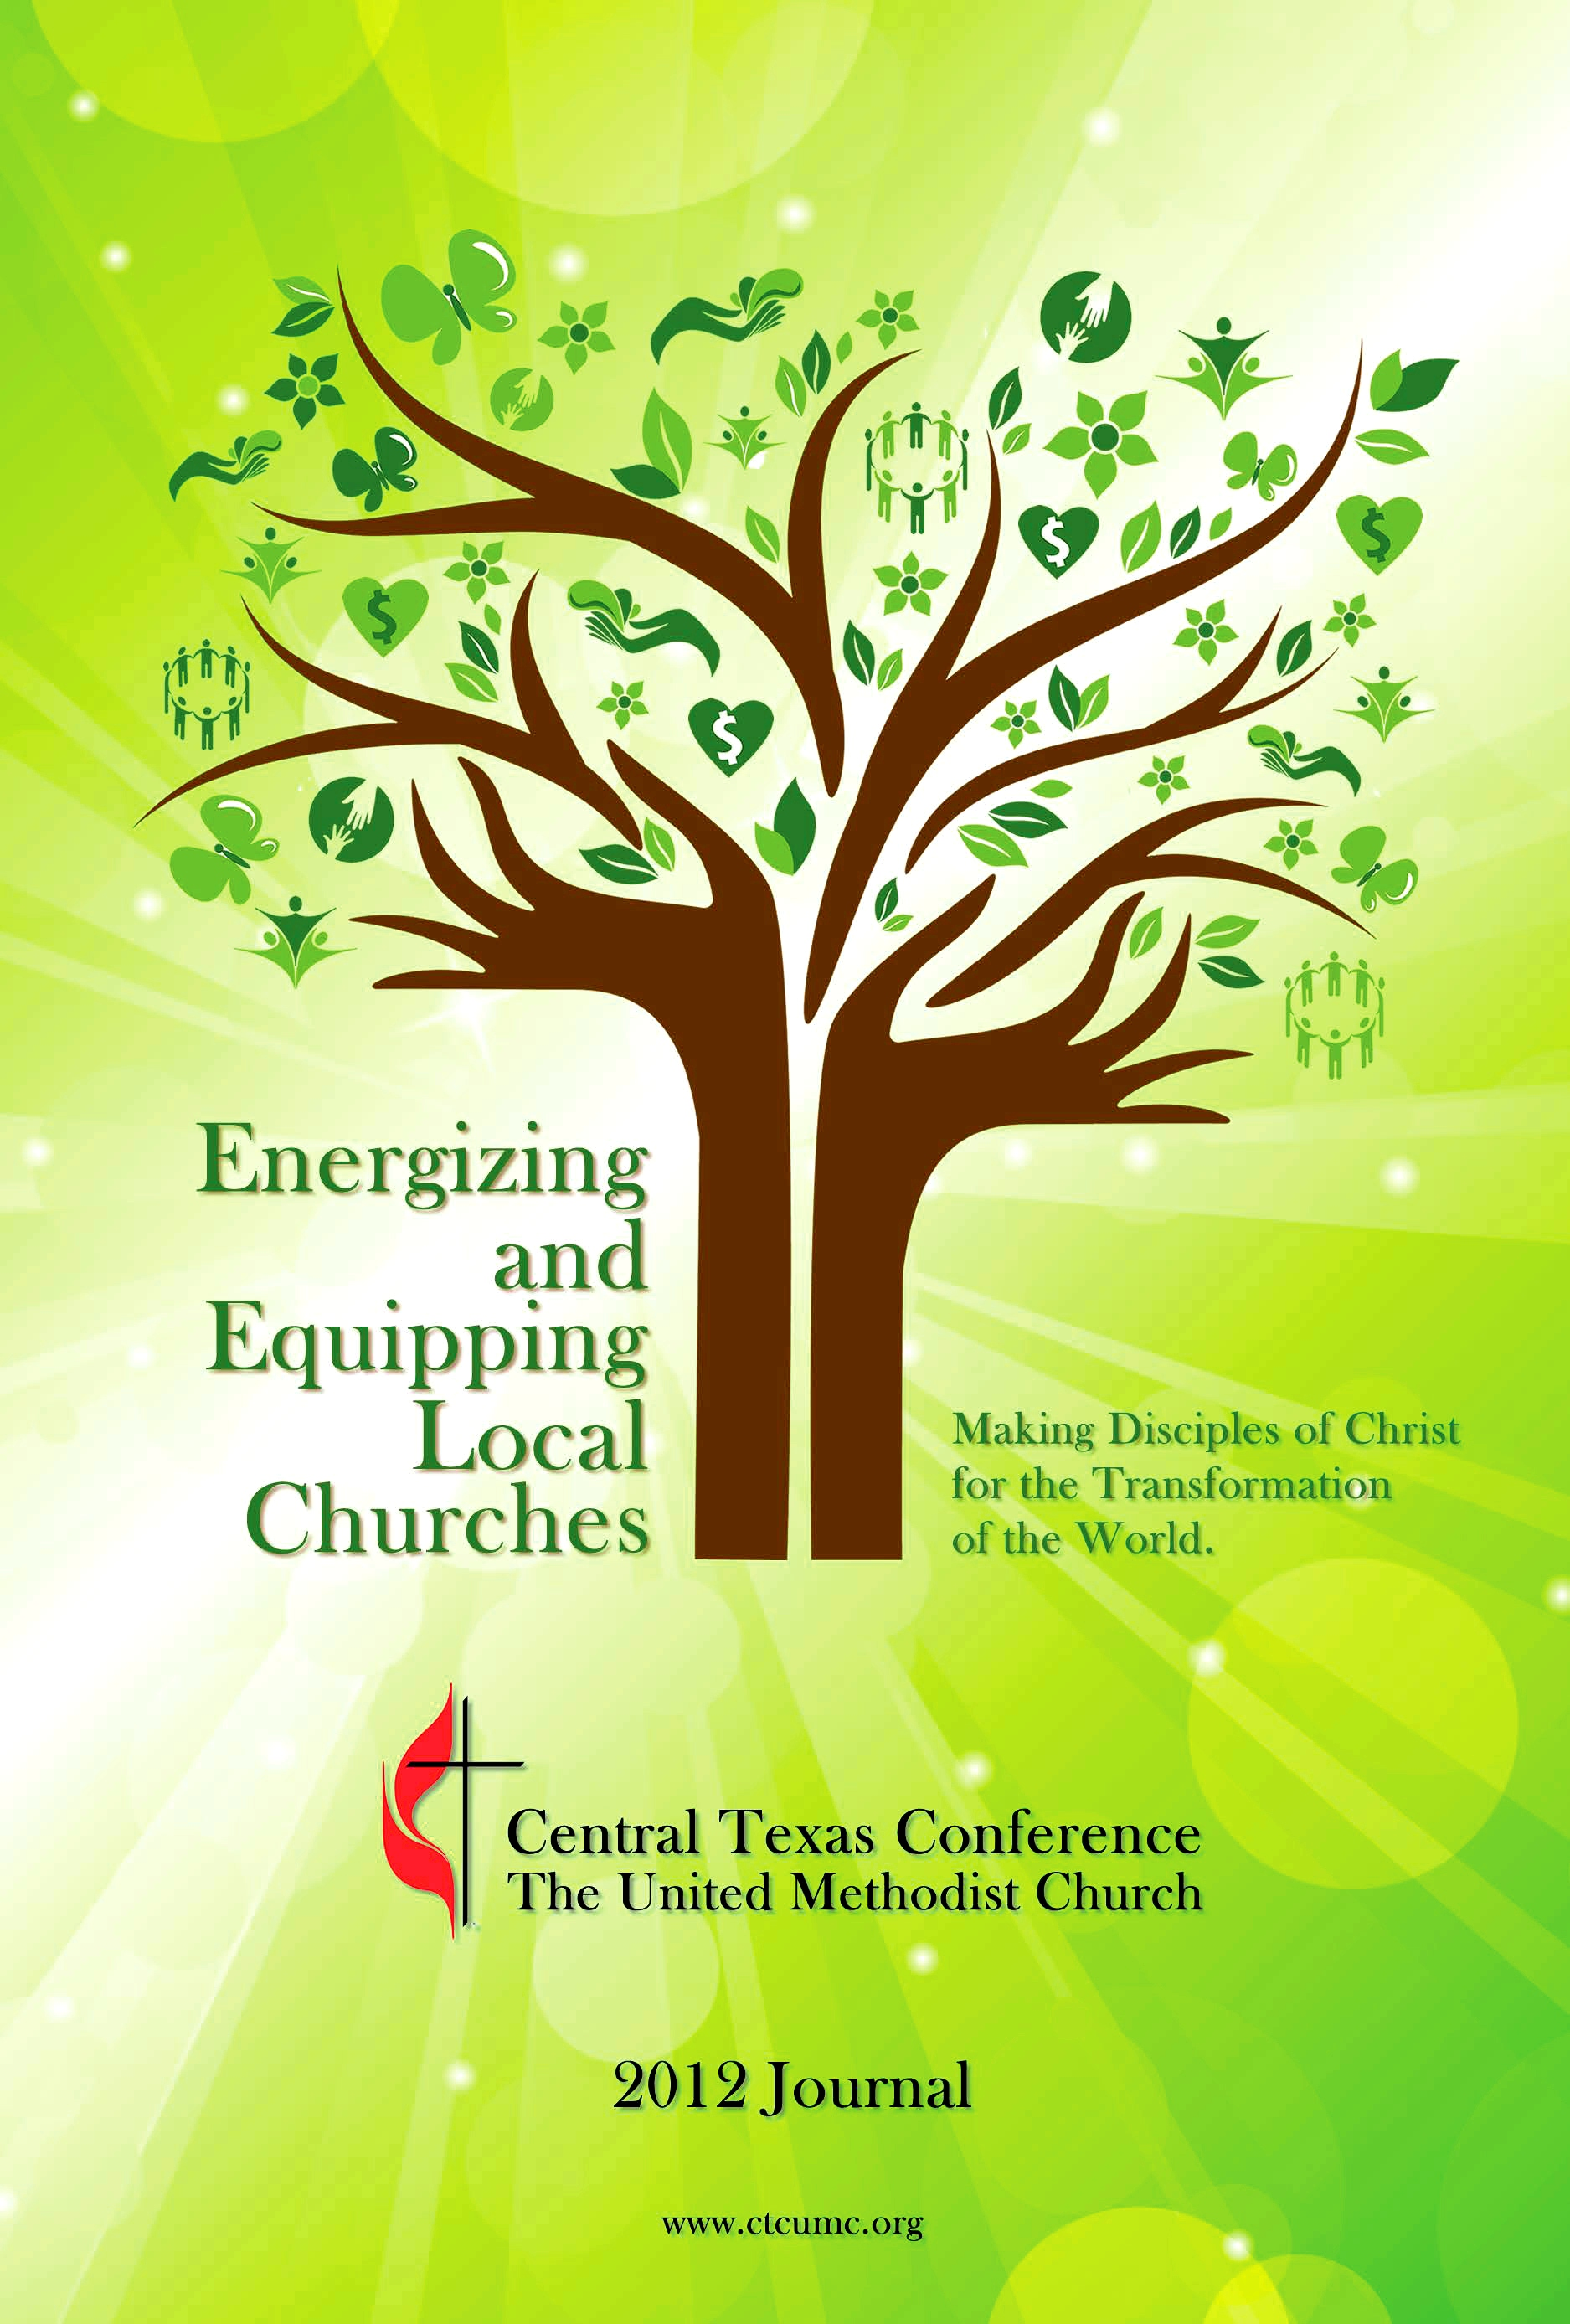 Central texas umc 2012 conference journal 2012 conference journal sciox Choice Image